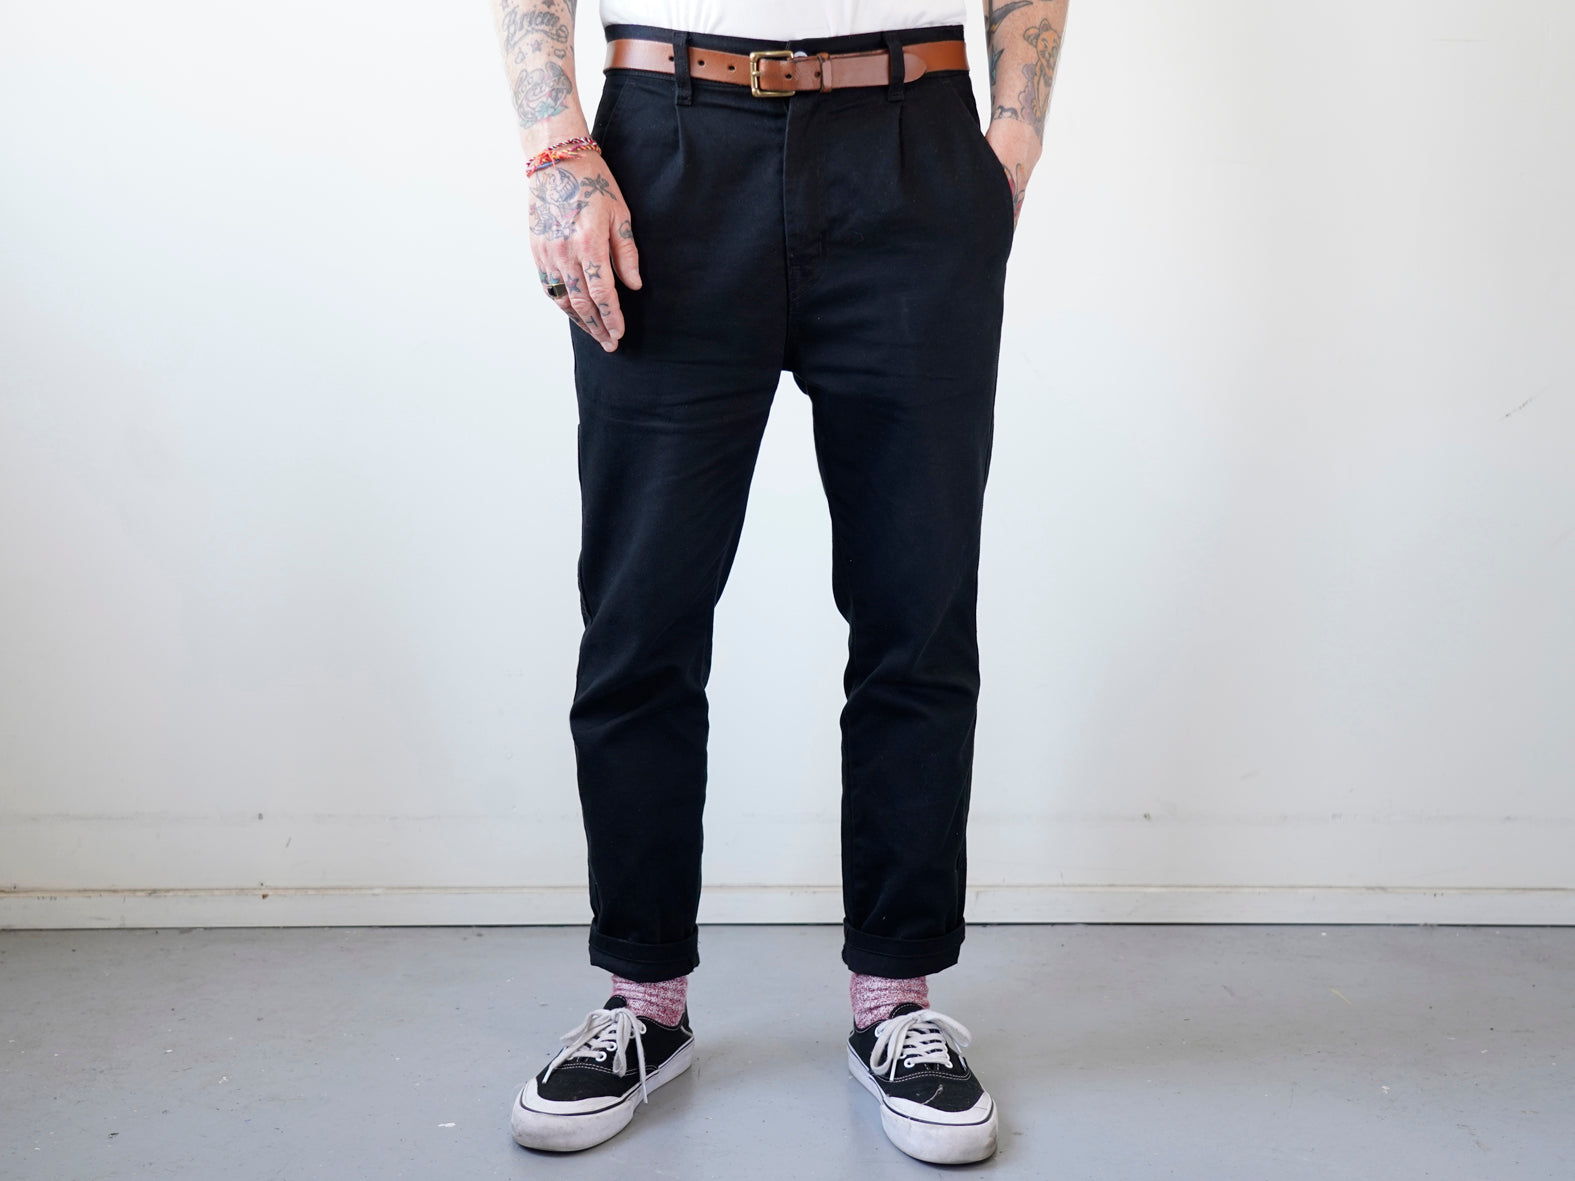 COURTLAND. LABOUR PANT. BLACK